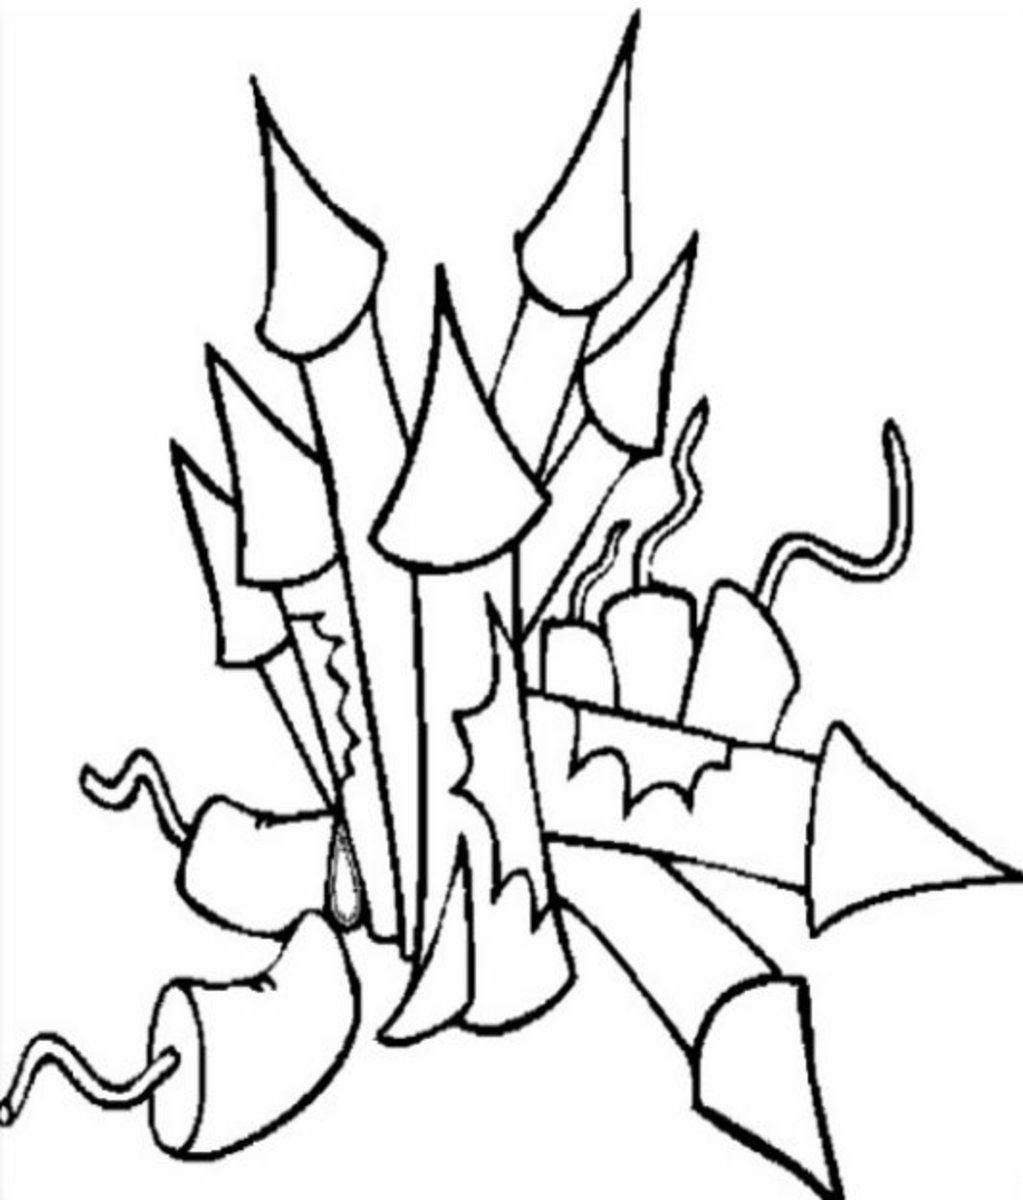 Fireworks Rockets Ready - Patriotic America Kids Coloring Pages and Free Colouring Pictures to Print